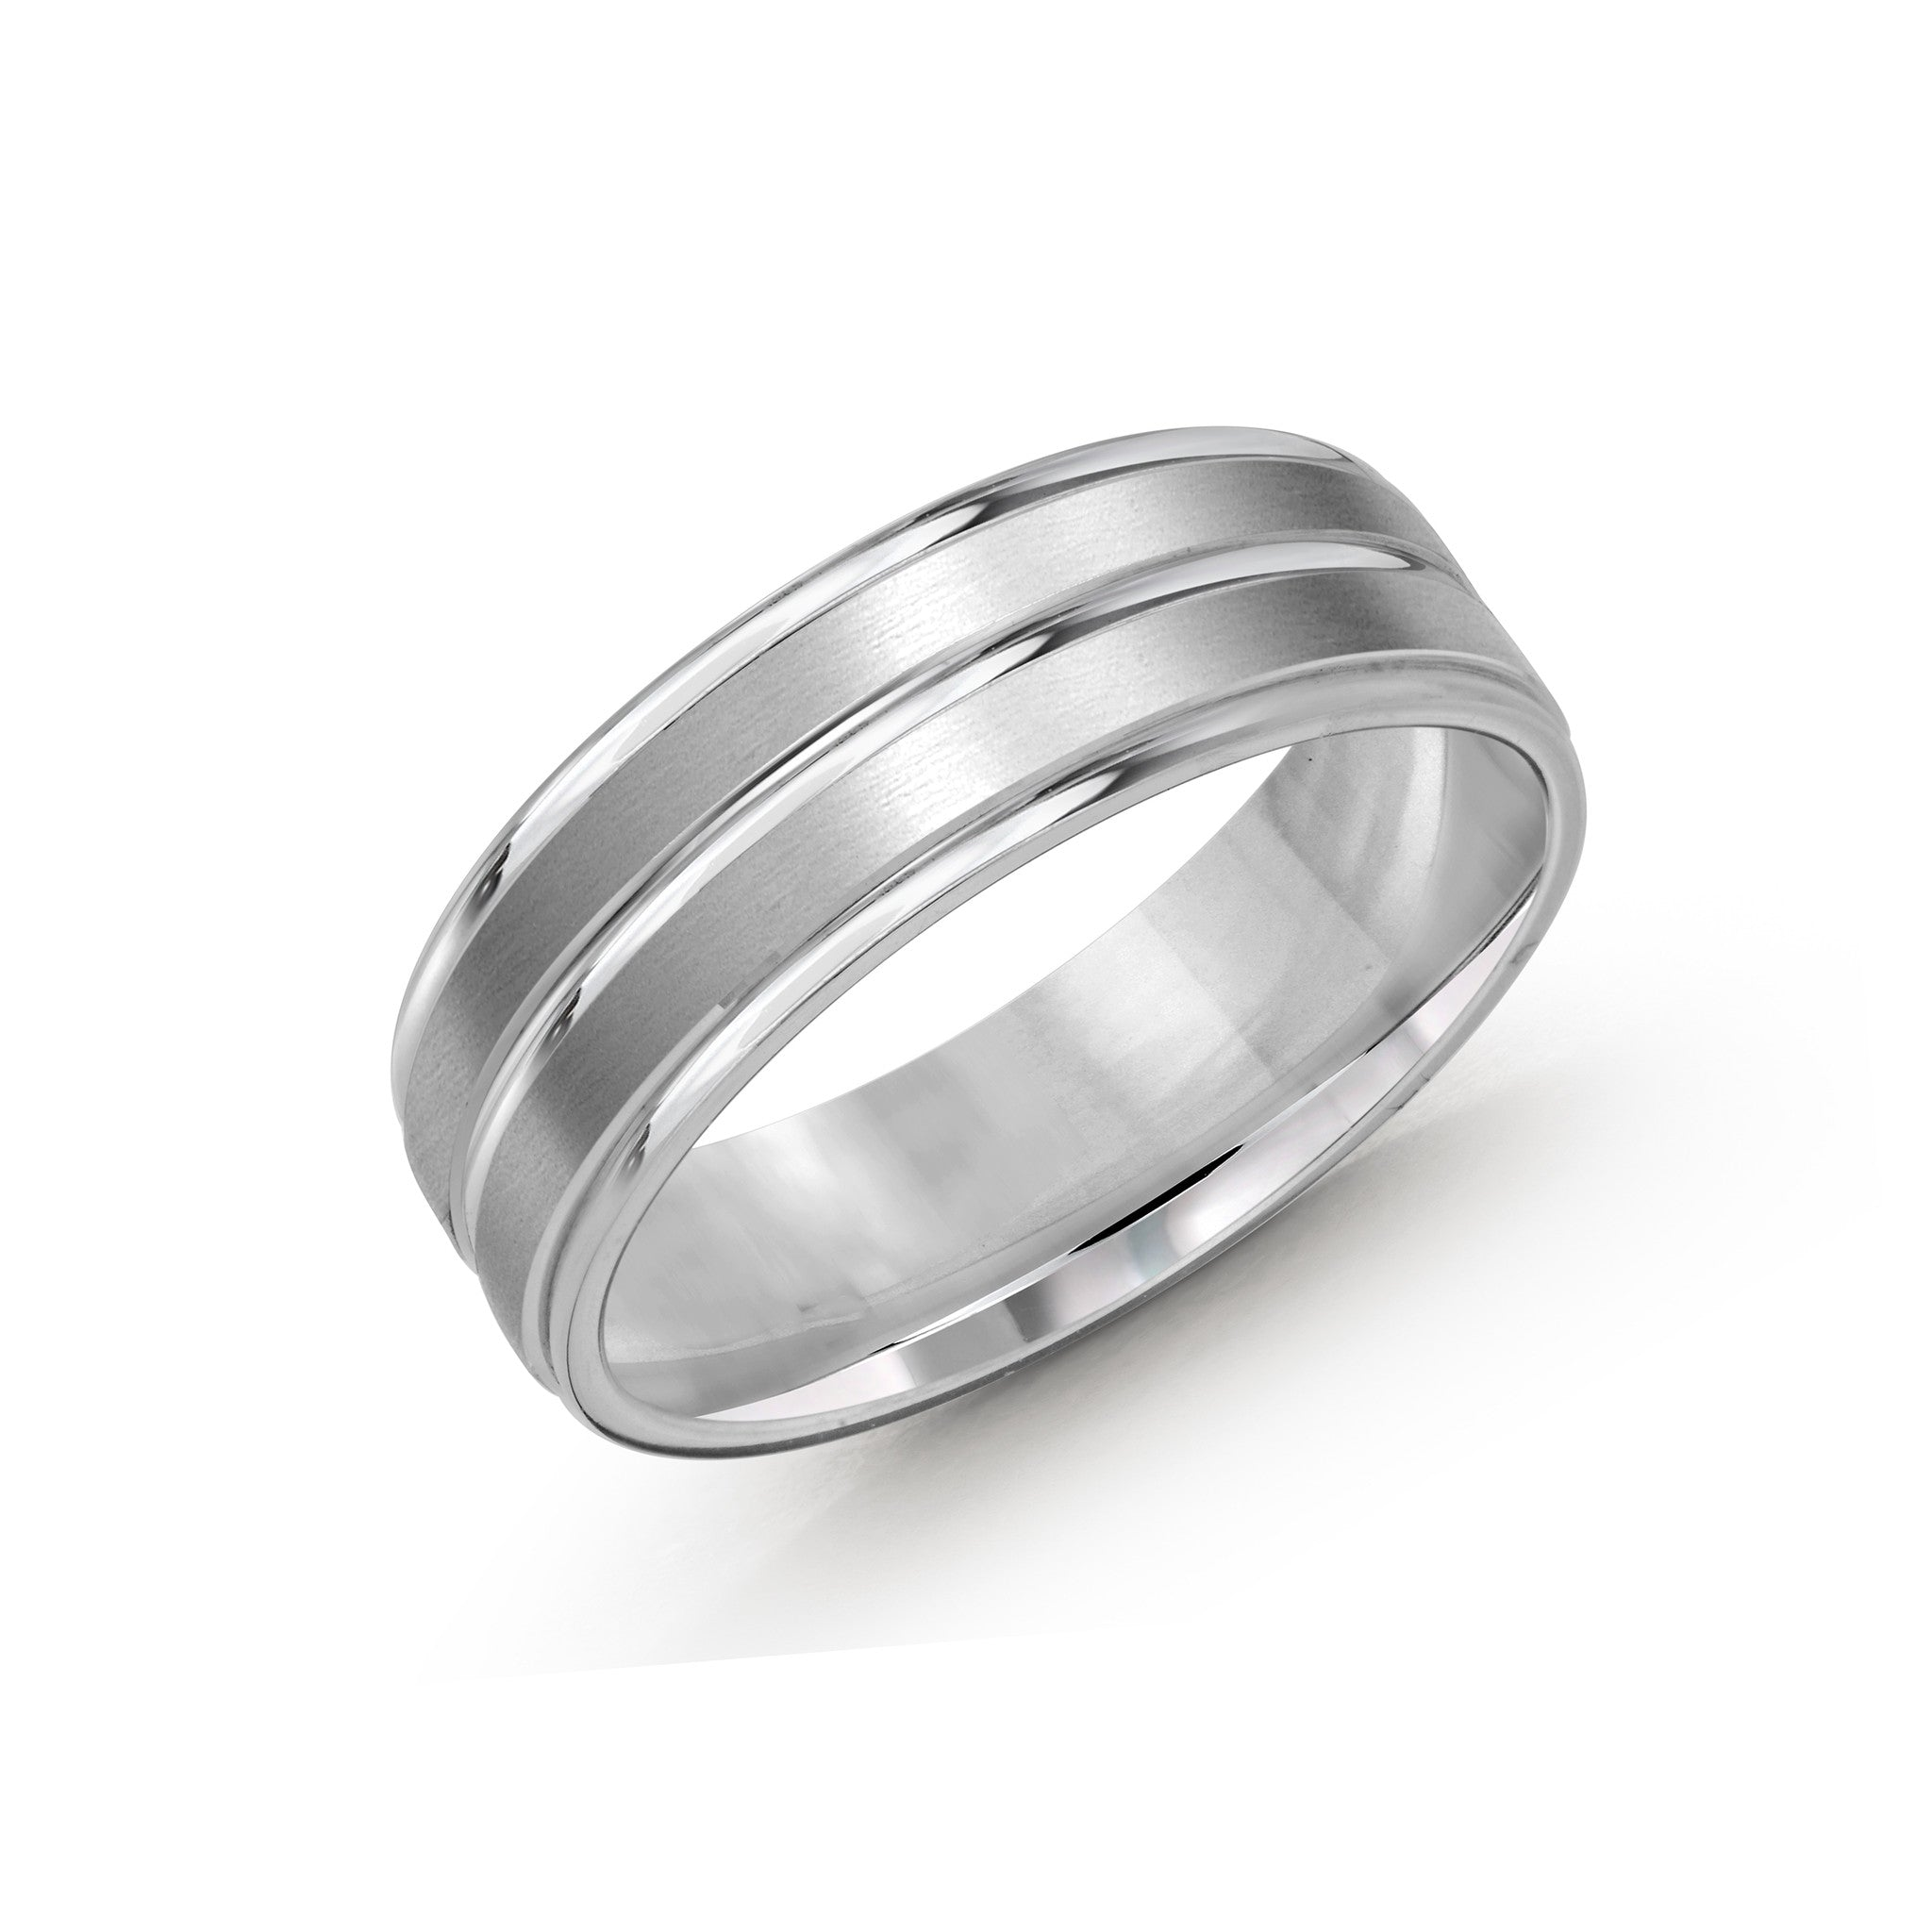 Malo Men's 10k White Gold Wedding Band With Striped Satin Finish